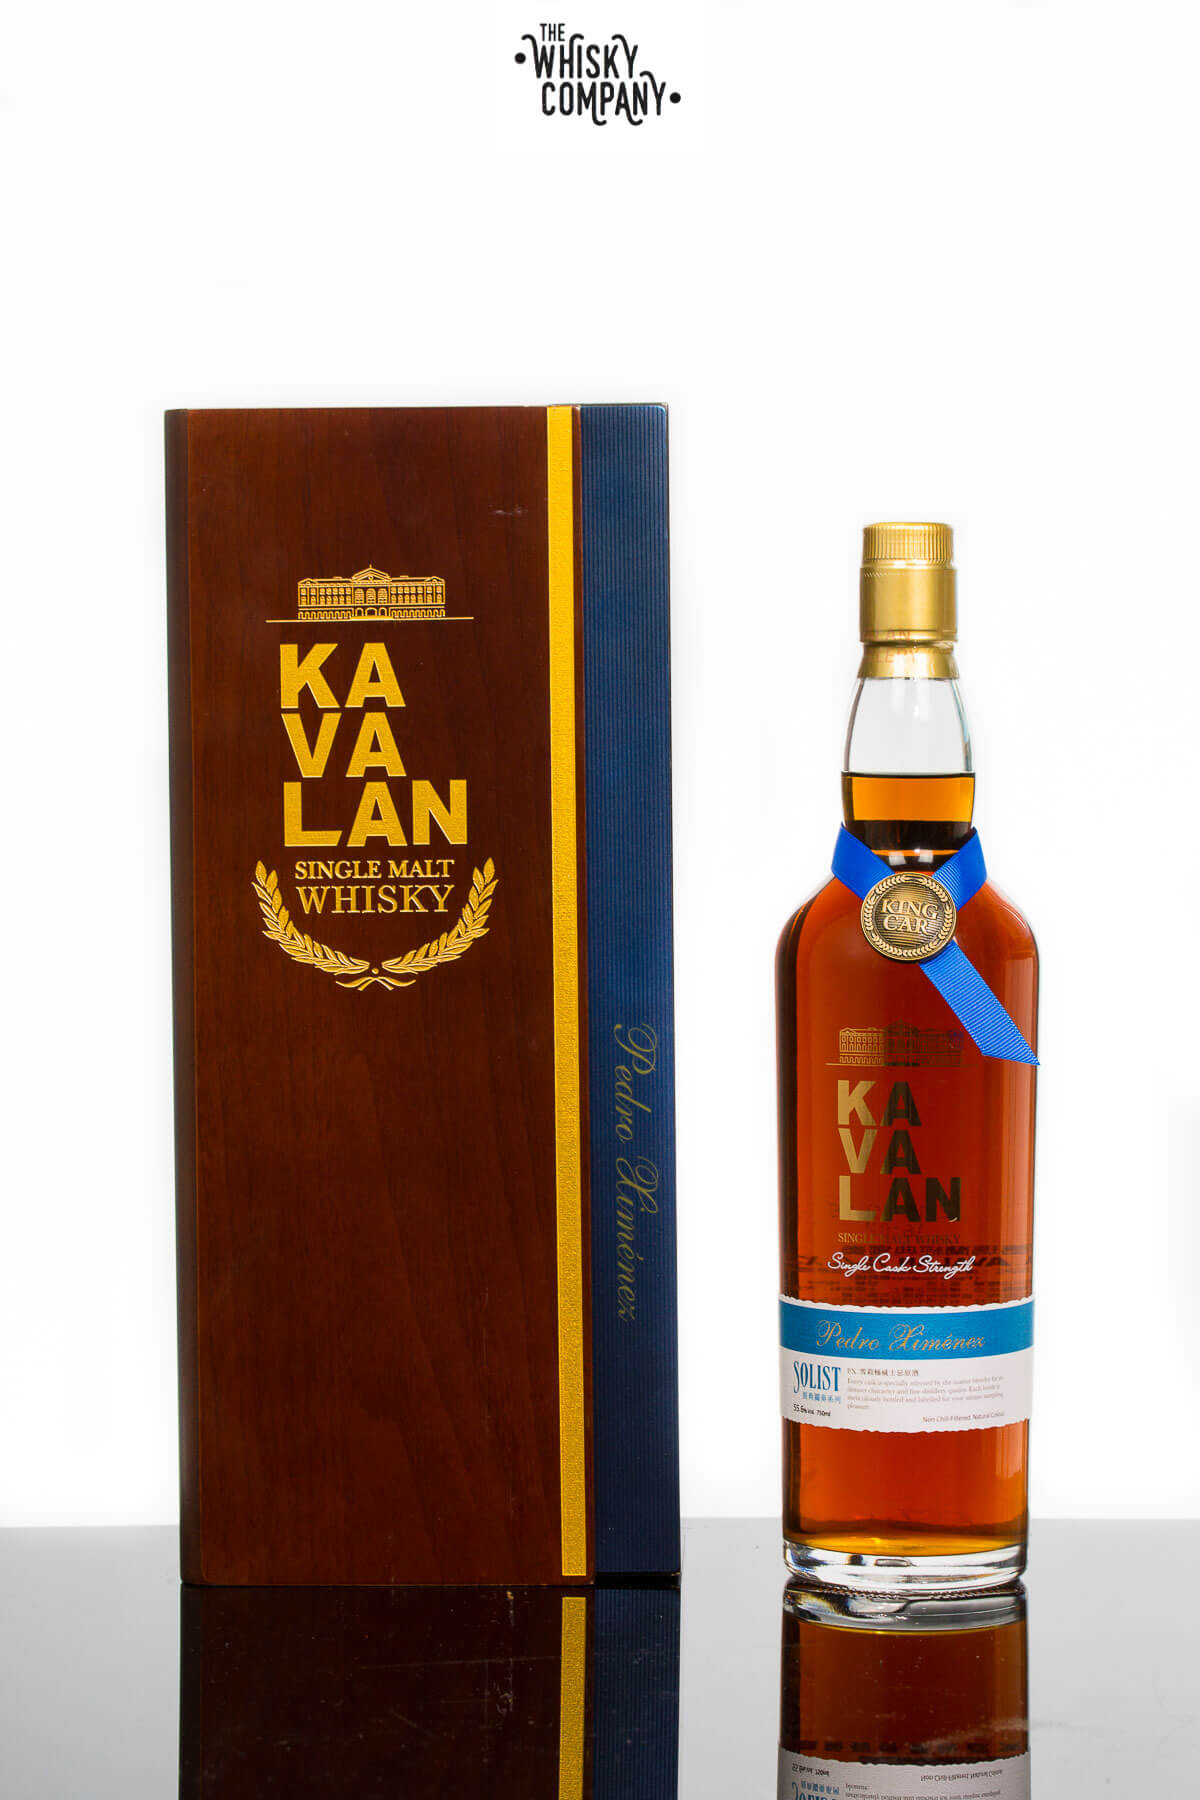 Kavalan Solist Pedro Ximenez Taiwanese Single Malt Whisky (750ml)